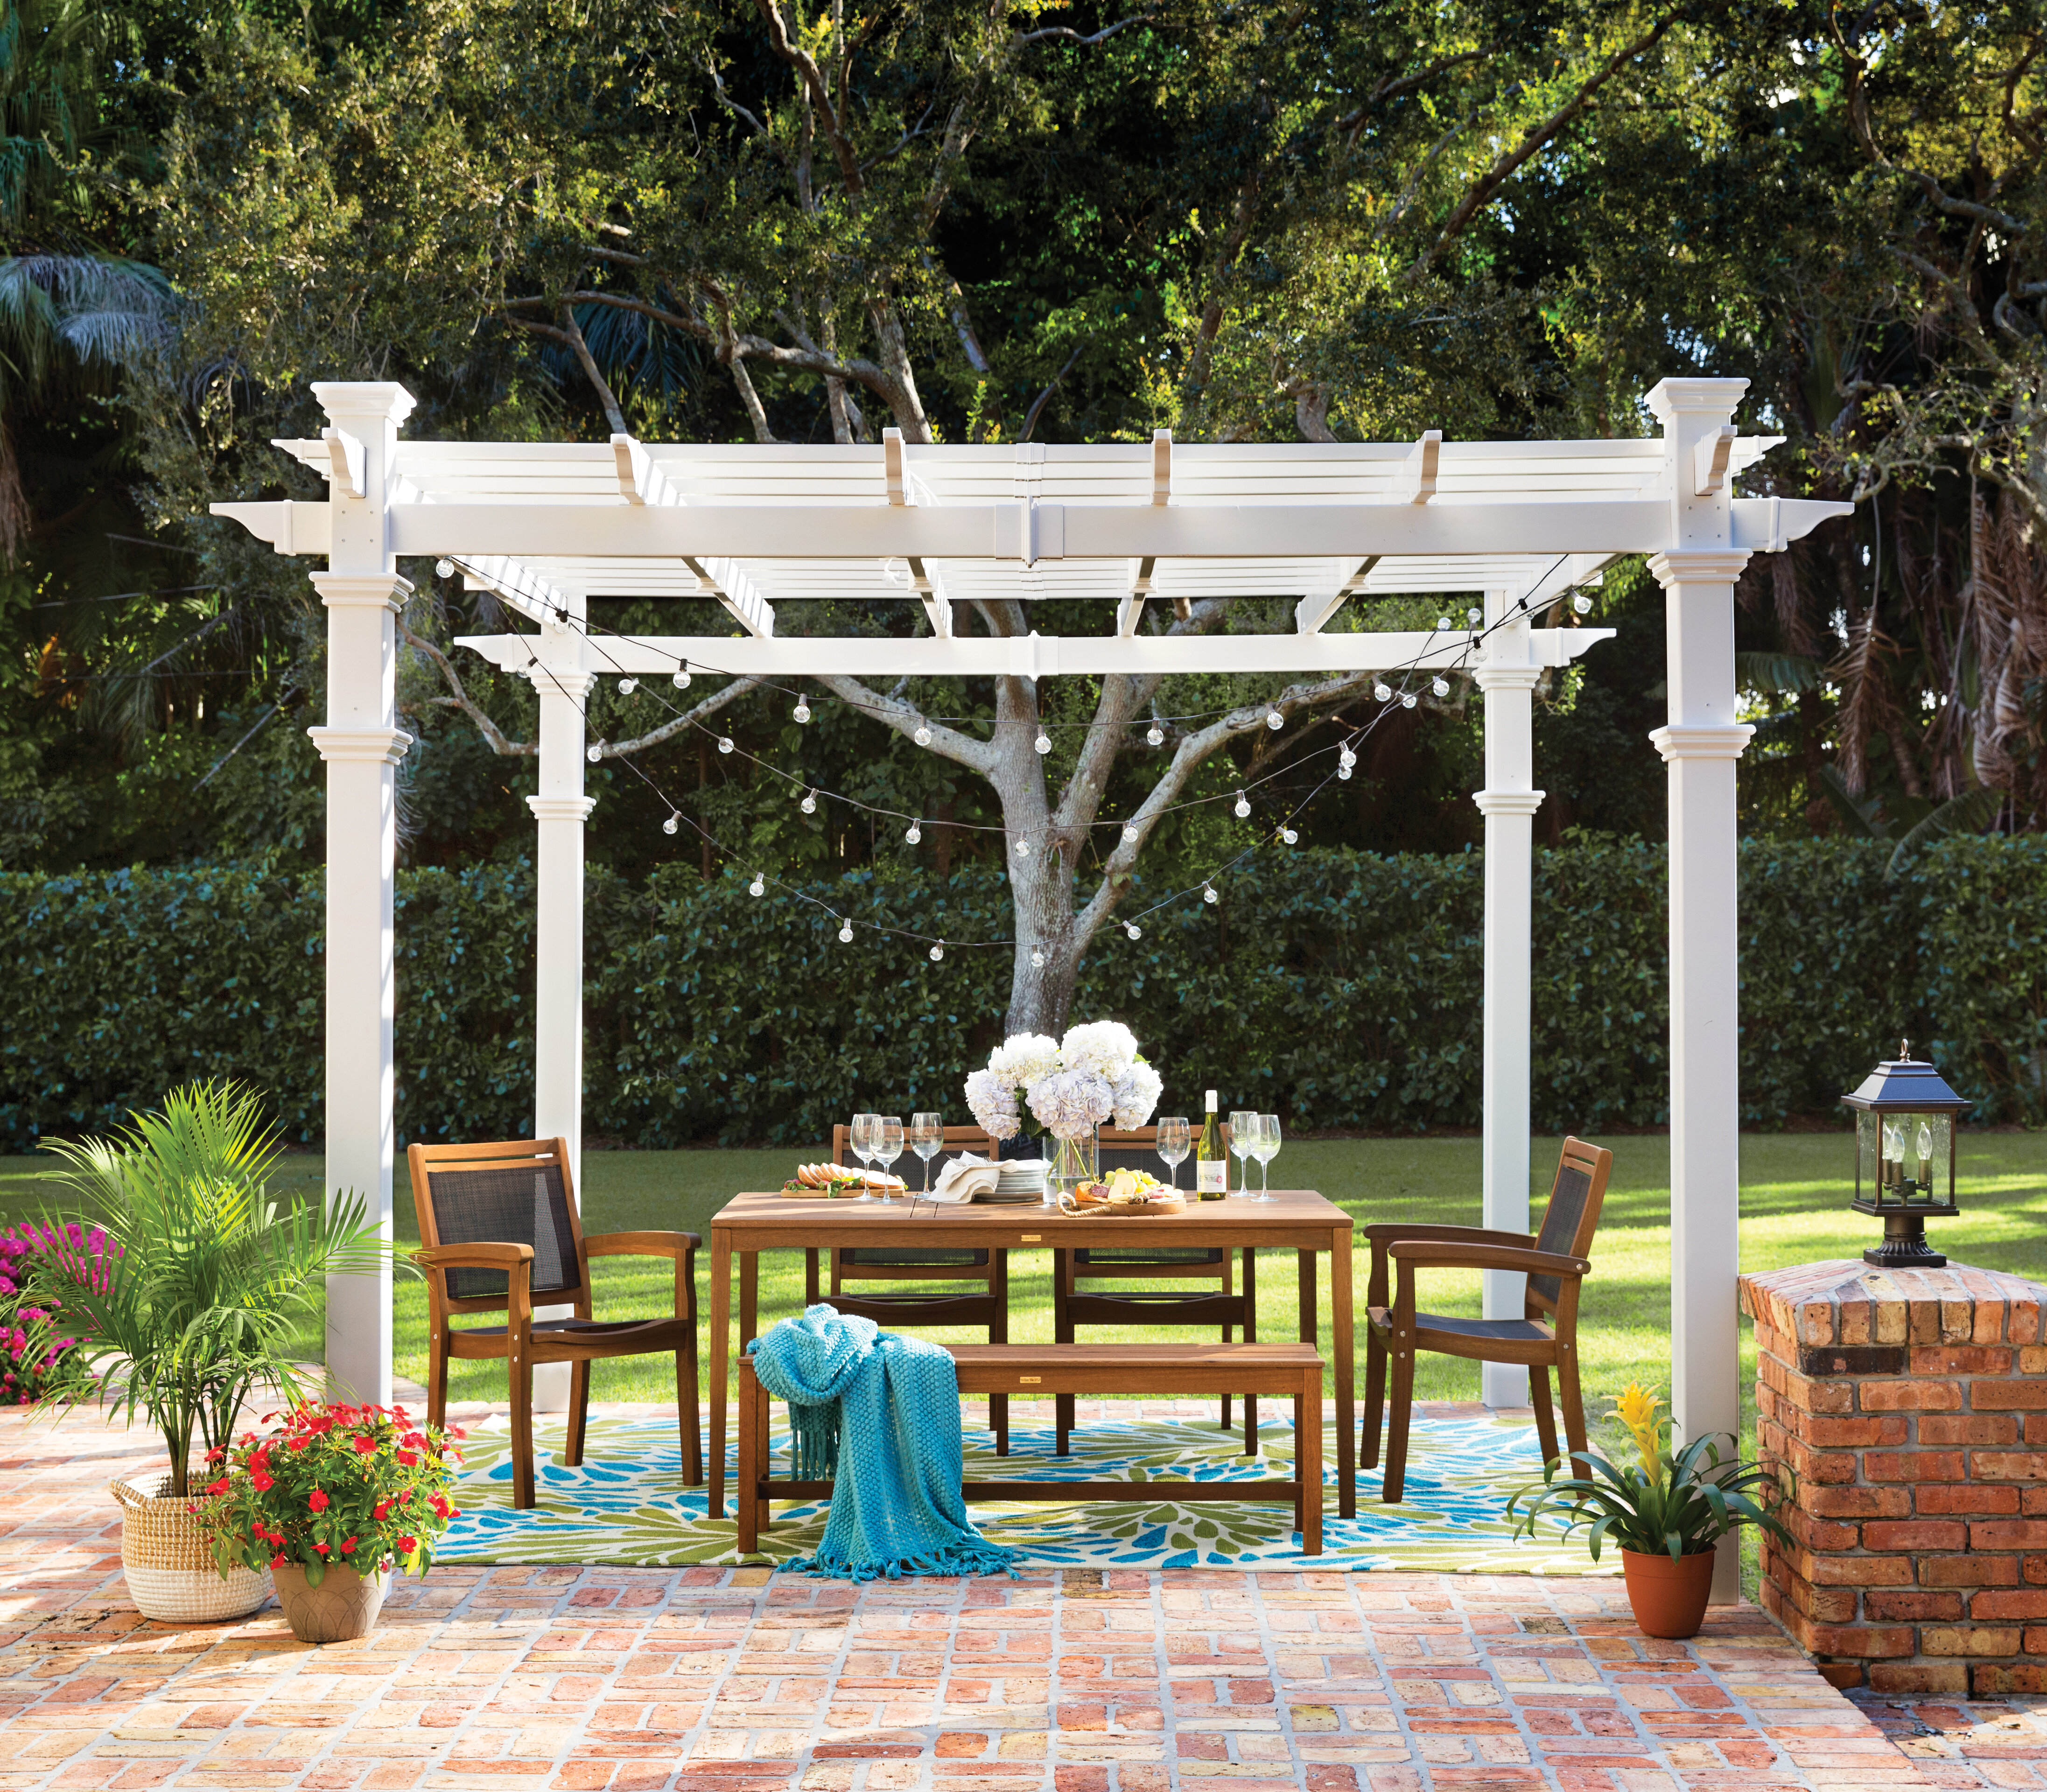 brick patio dinner set shaded by a white pergola decorated with string lights